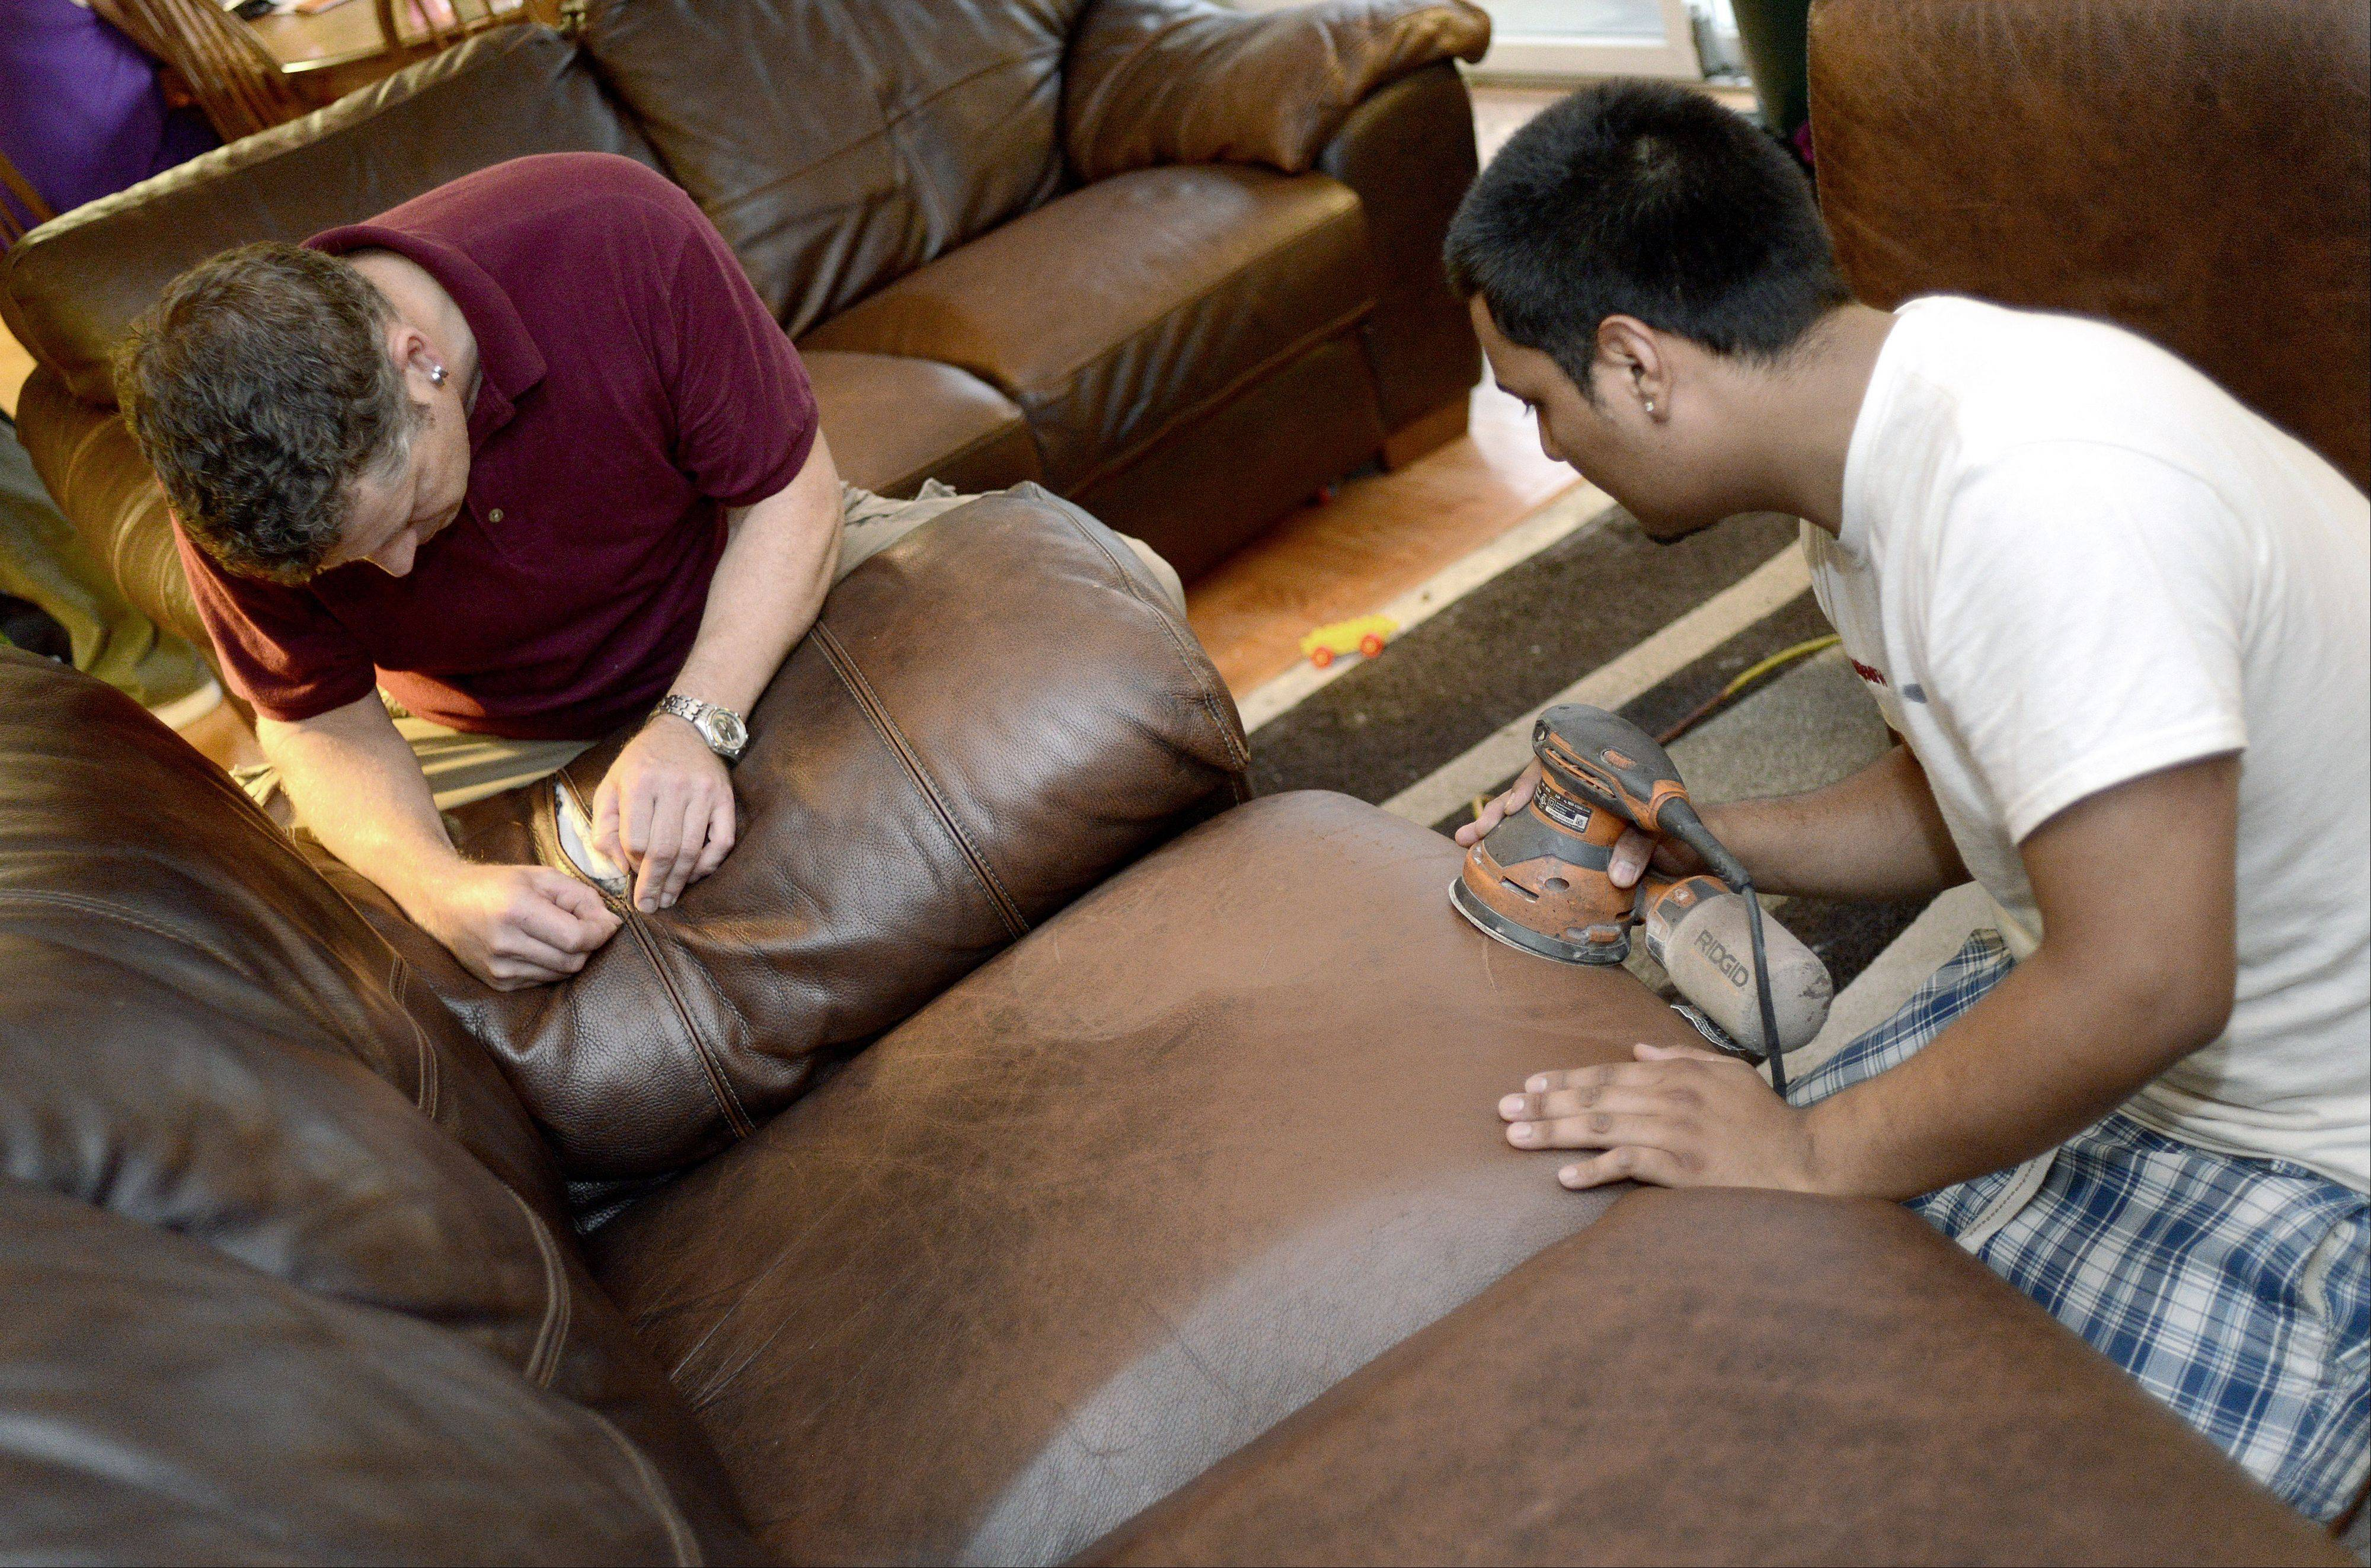 Fibrenew franchise owner Ivar Vankemenade restitches a busted seam of an armrest while Angel Gavina resurfaces the cushions on the leather couch, prepping it for restoration. Vankemenade visits clients in their homes, like this one in Elgin, and does furniture restoration work on site.